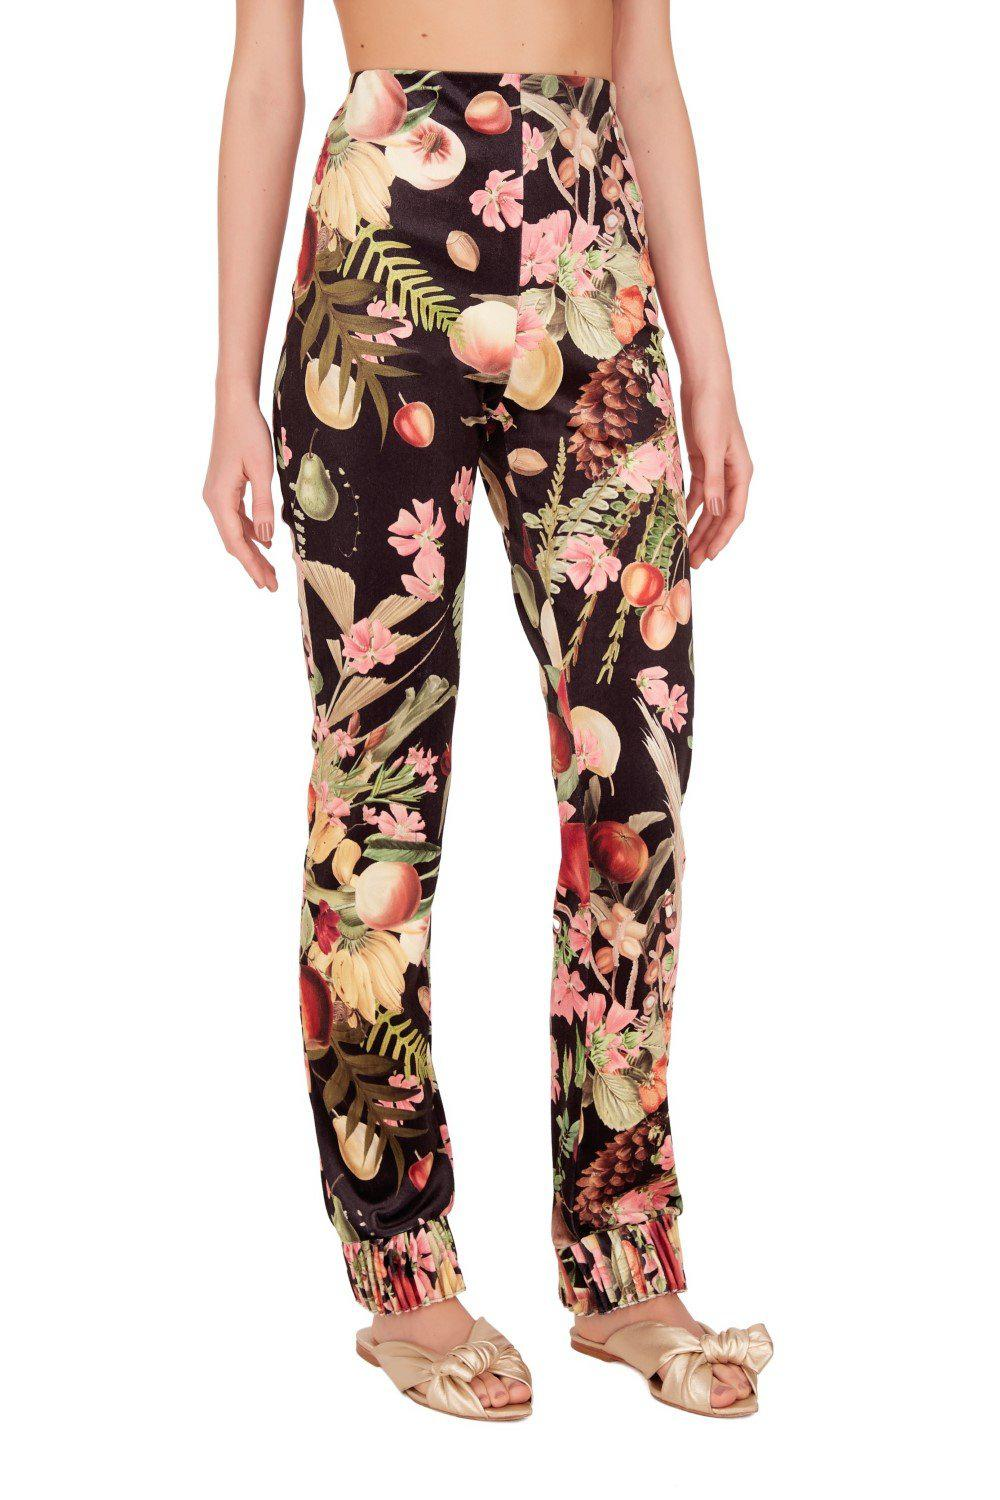 Fruits Exotiques High-waisted Pants with Frills